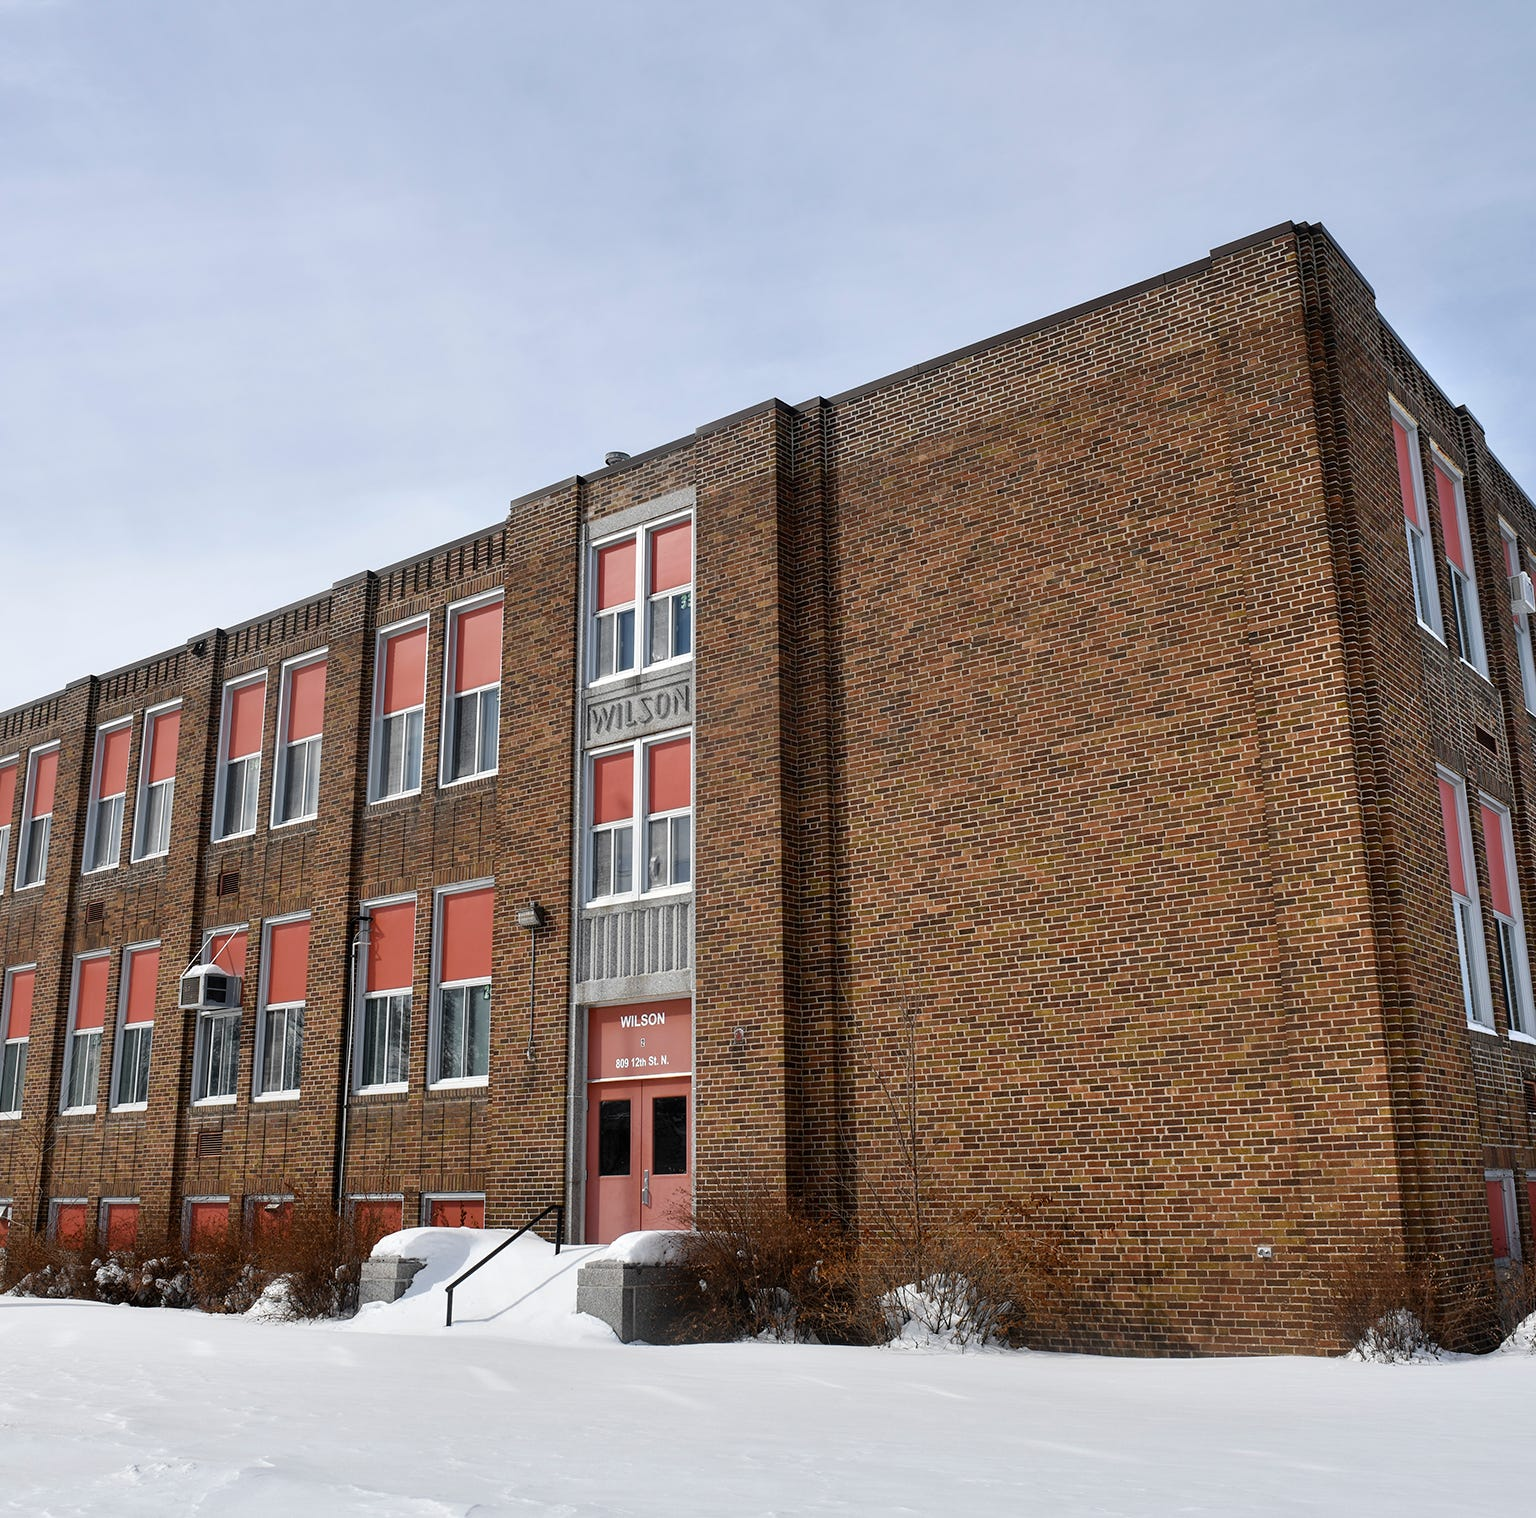 It's finally time for school district to sell Wilson school site